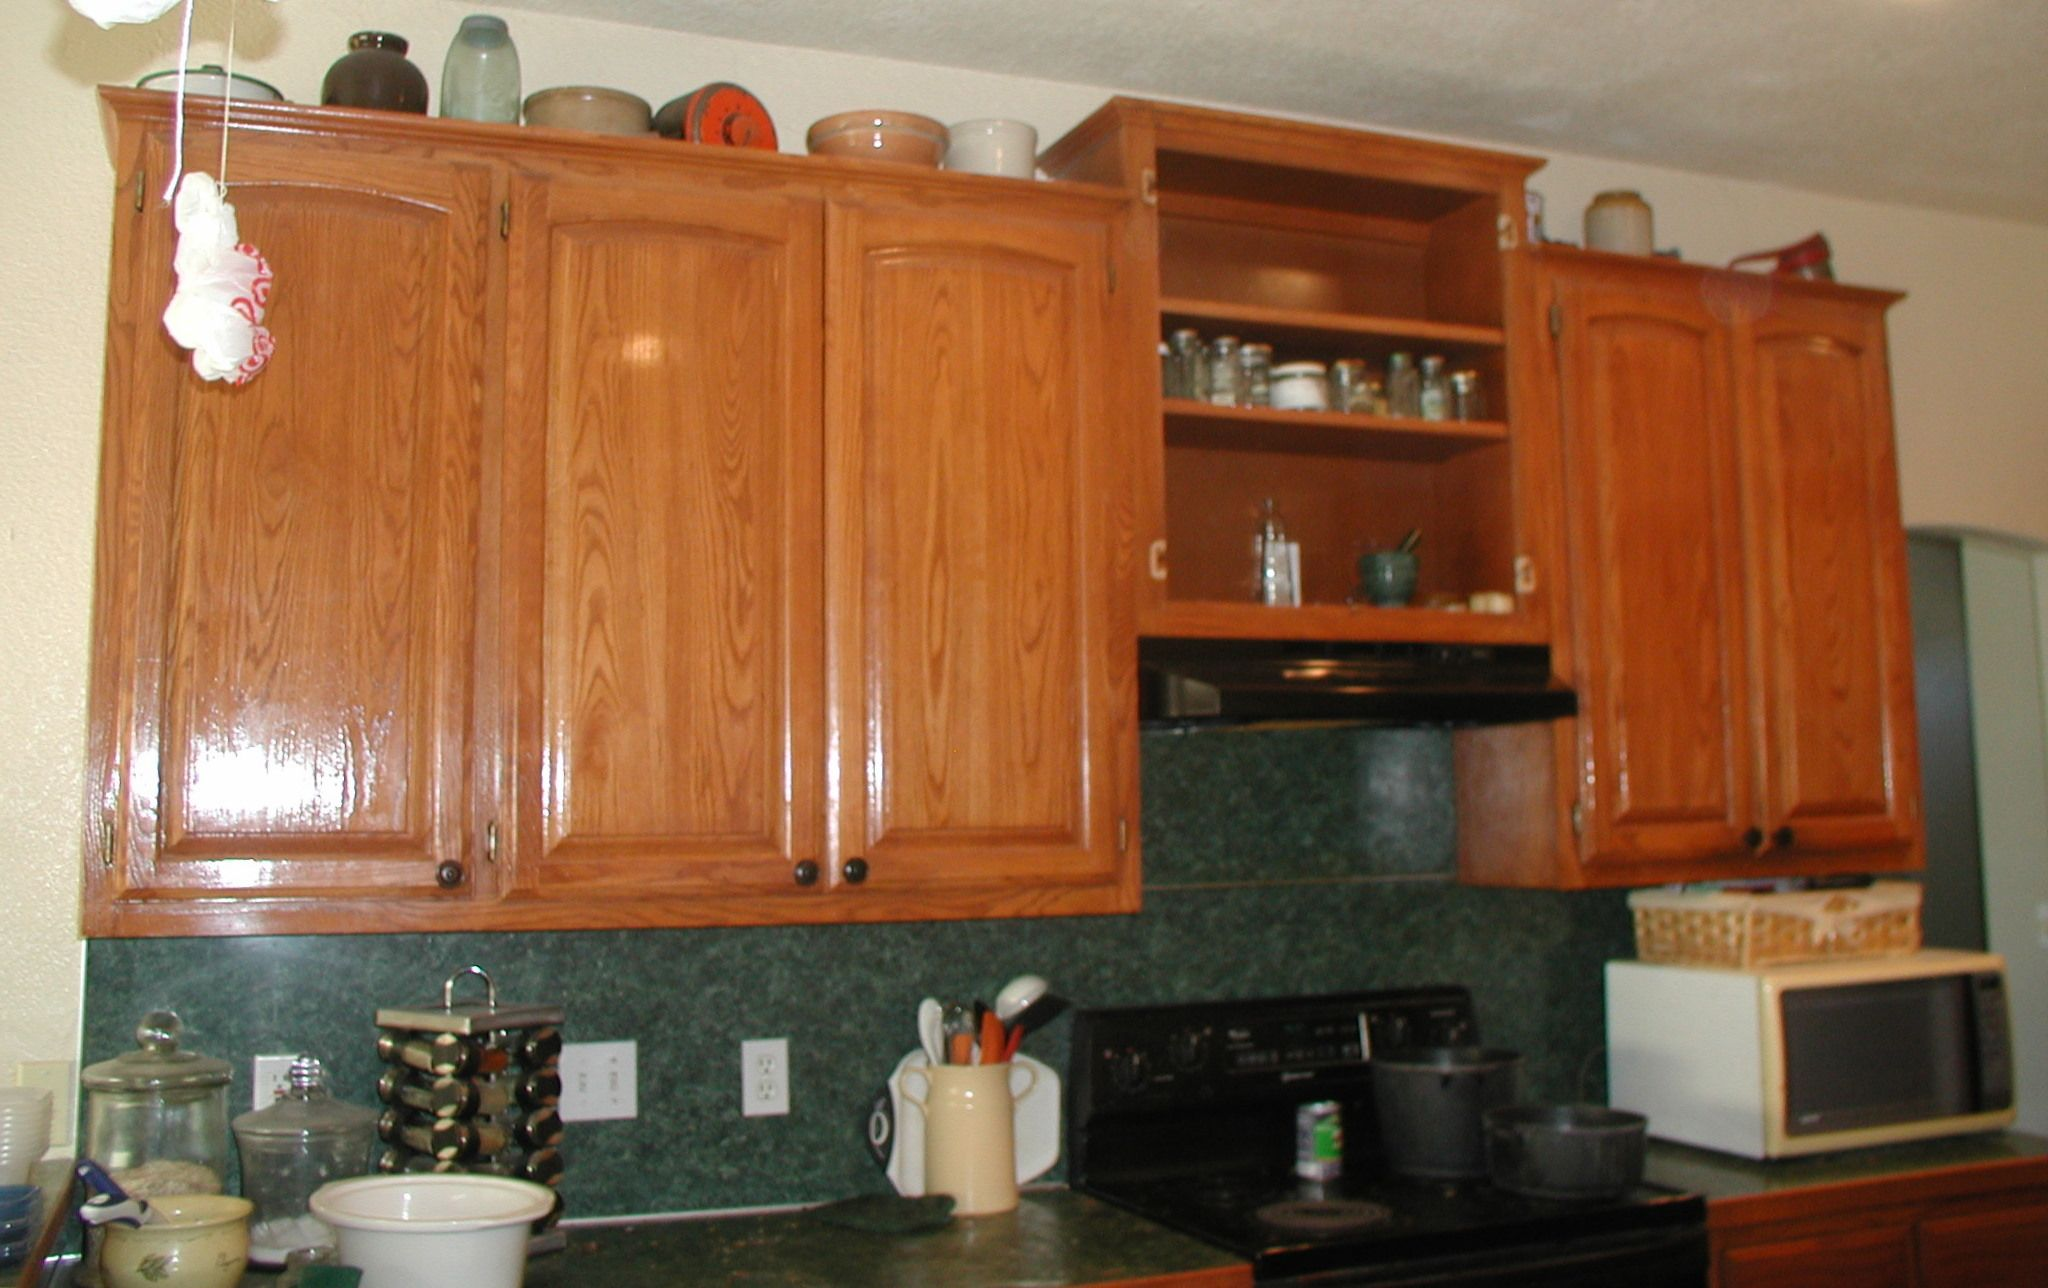 nice How High Kitchen Wall Cabinets #5: Kitchen Wall Cabinets Height Above Counter